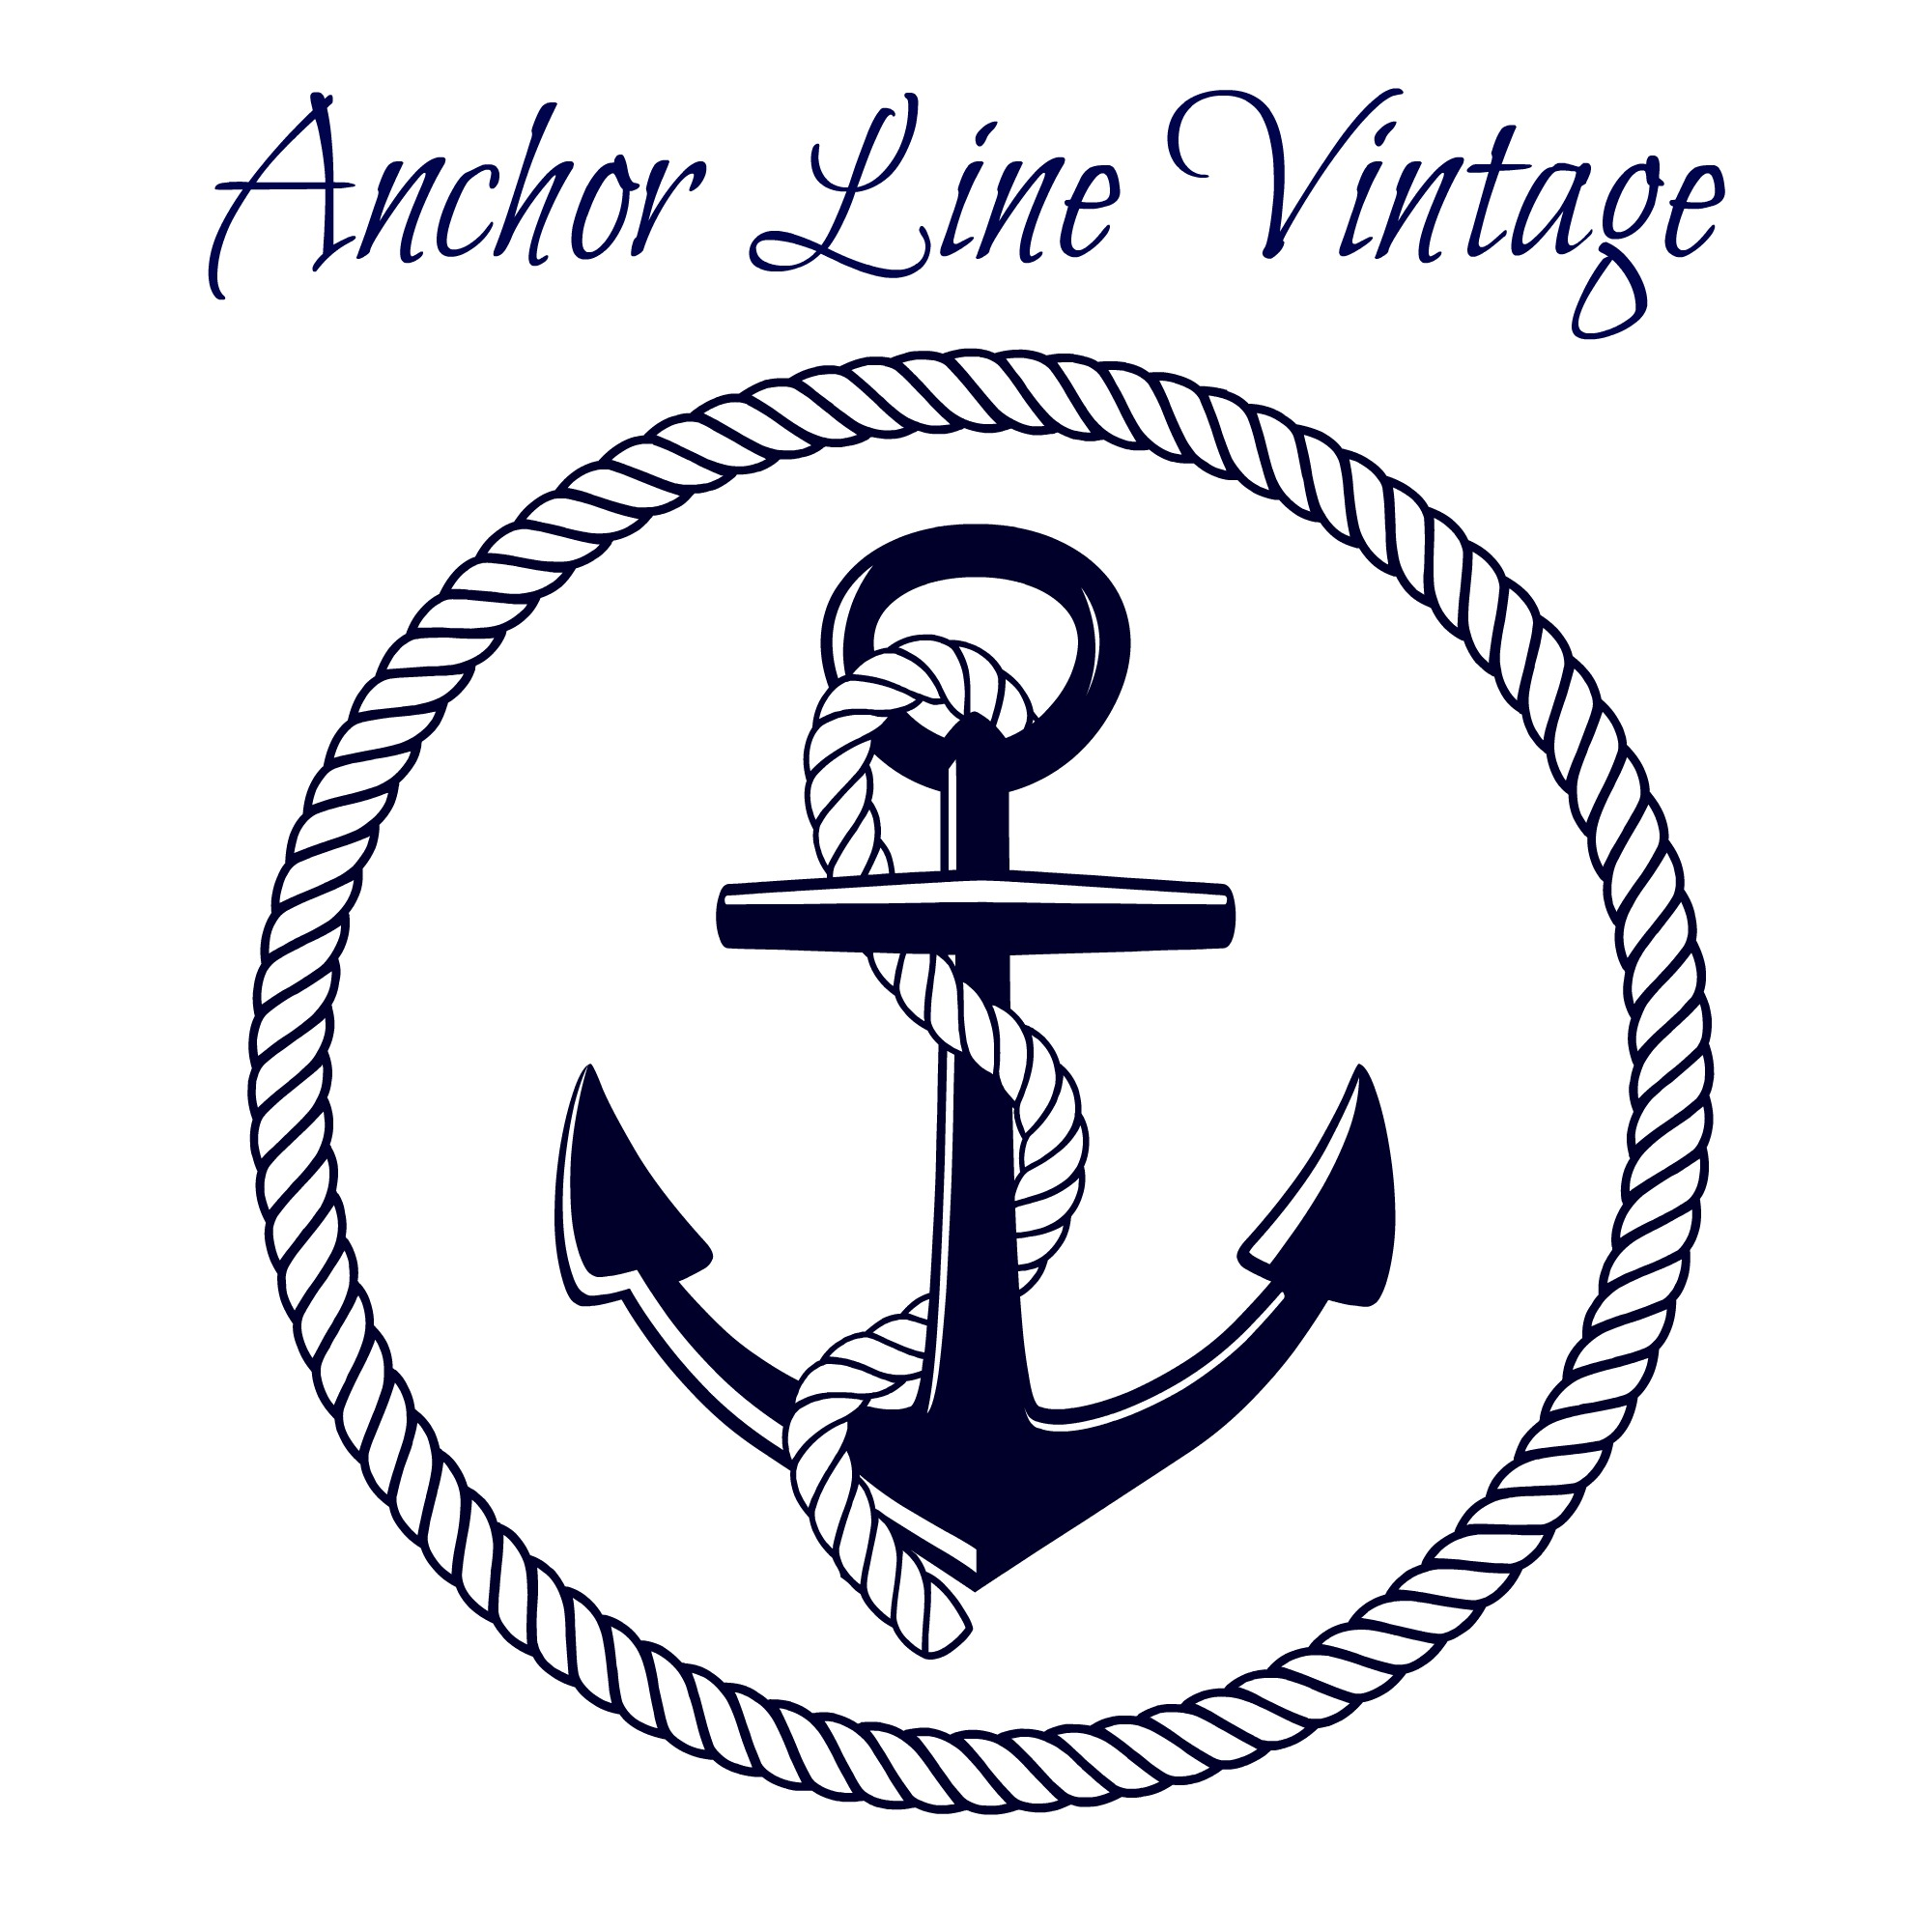 Anchor logos my online store is open for business sanctuary gardener thecheapjerseys Choice Image